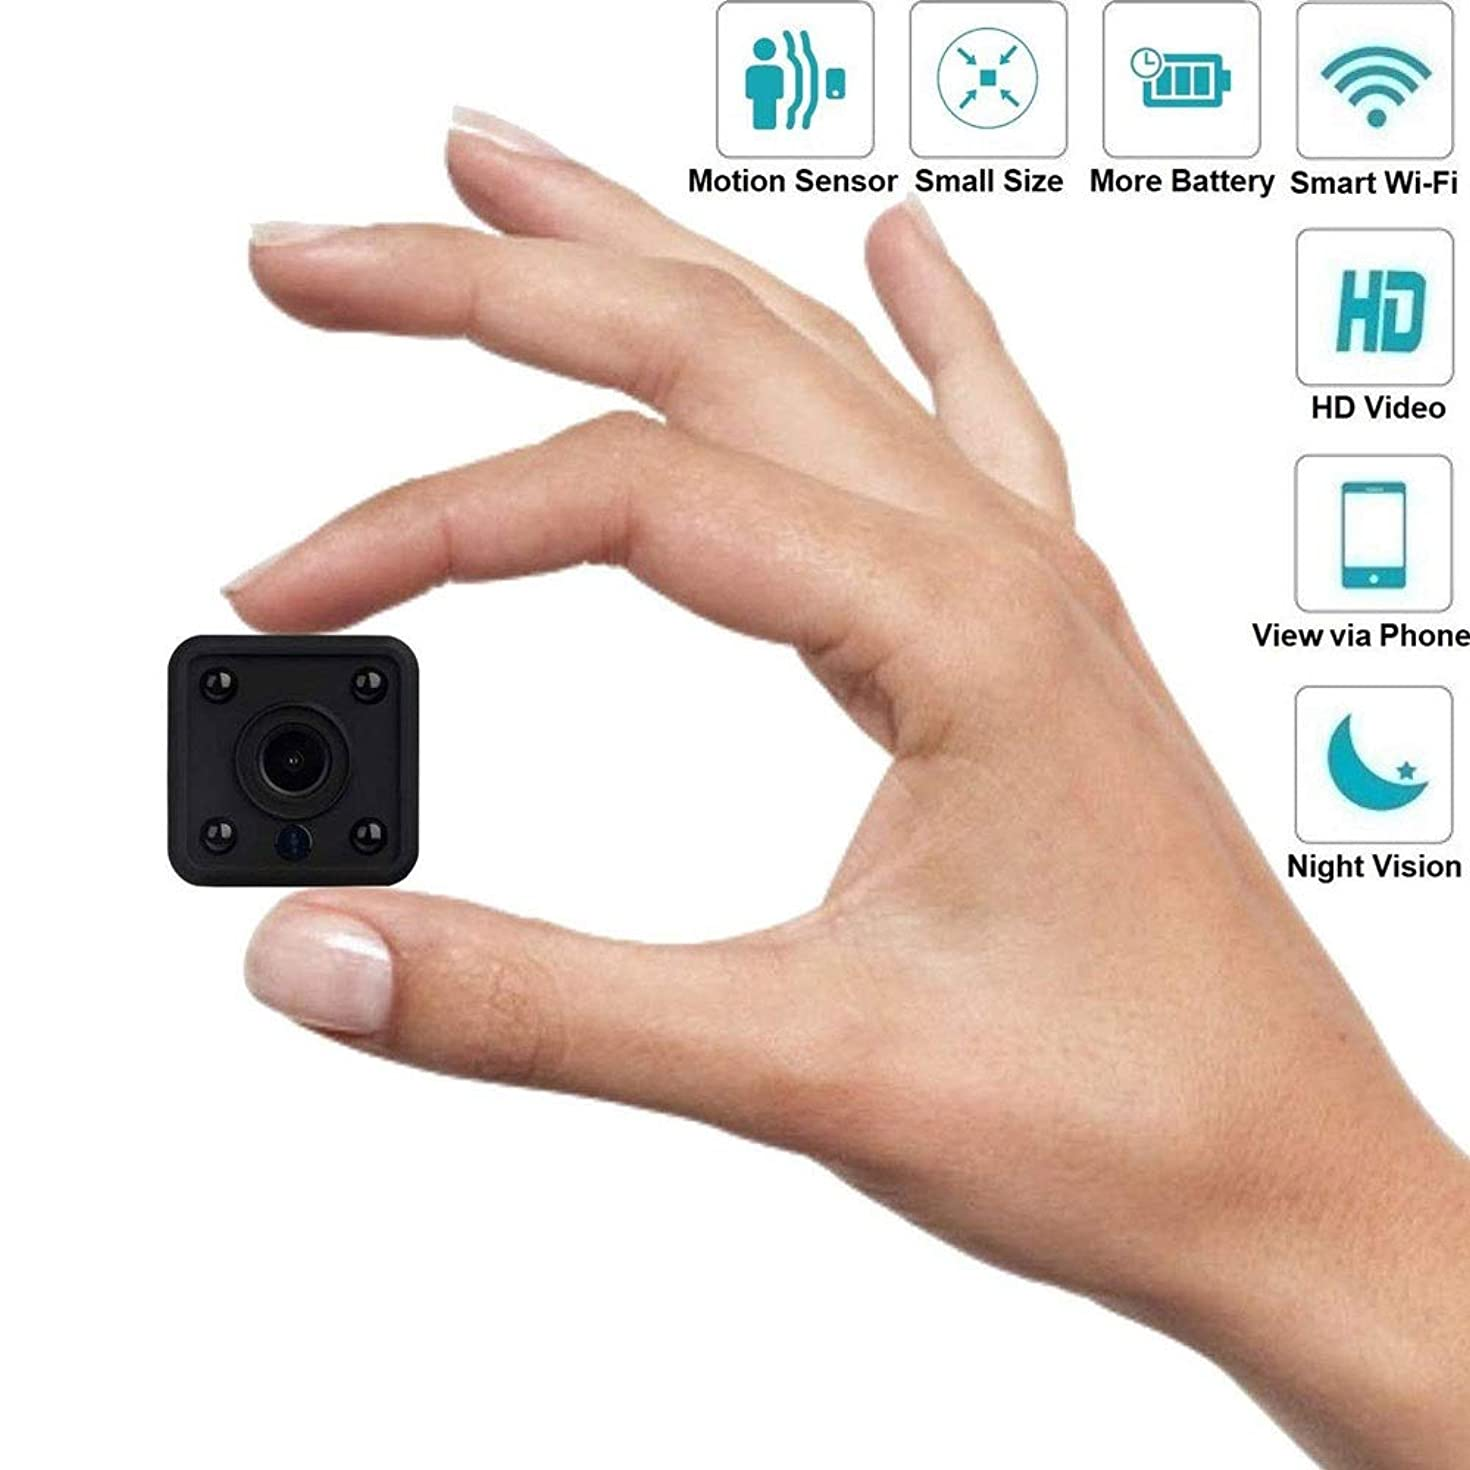 XHMCDZ Hidden Camera 1080P HD Mini Spy Camera Small Wireless Camera Tiny Covert Cam Security WiFi Surveillance Camera Video Recorder with Night Vision/Motion Detection for iPhone/Android Phone/iPad